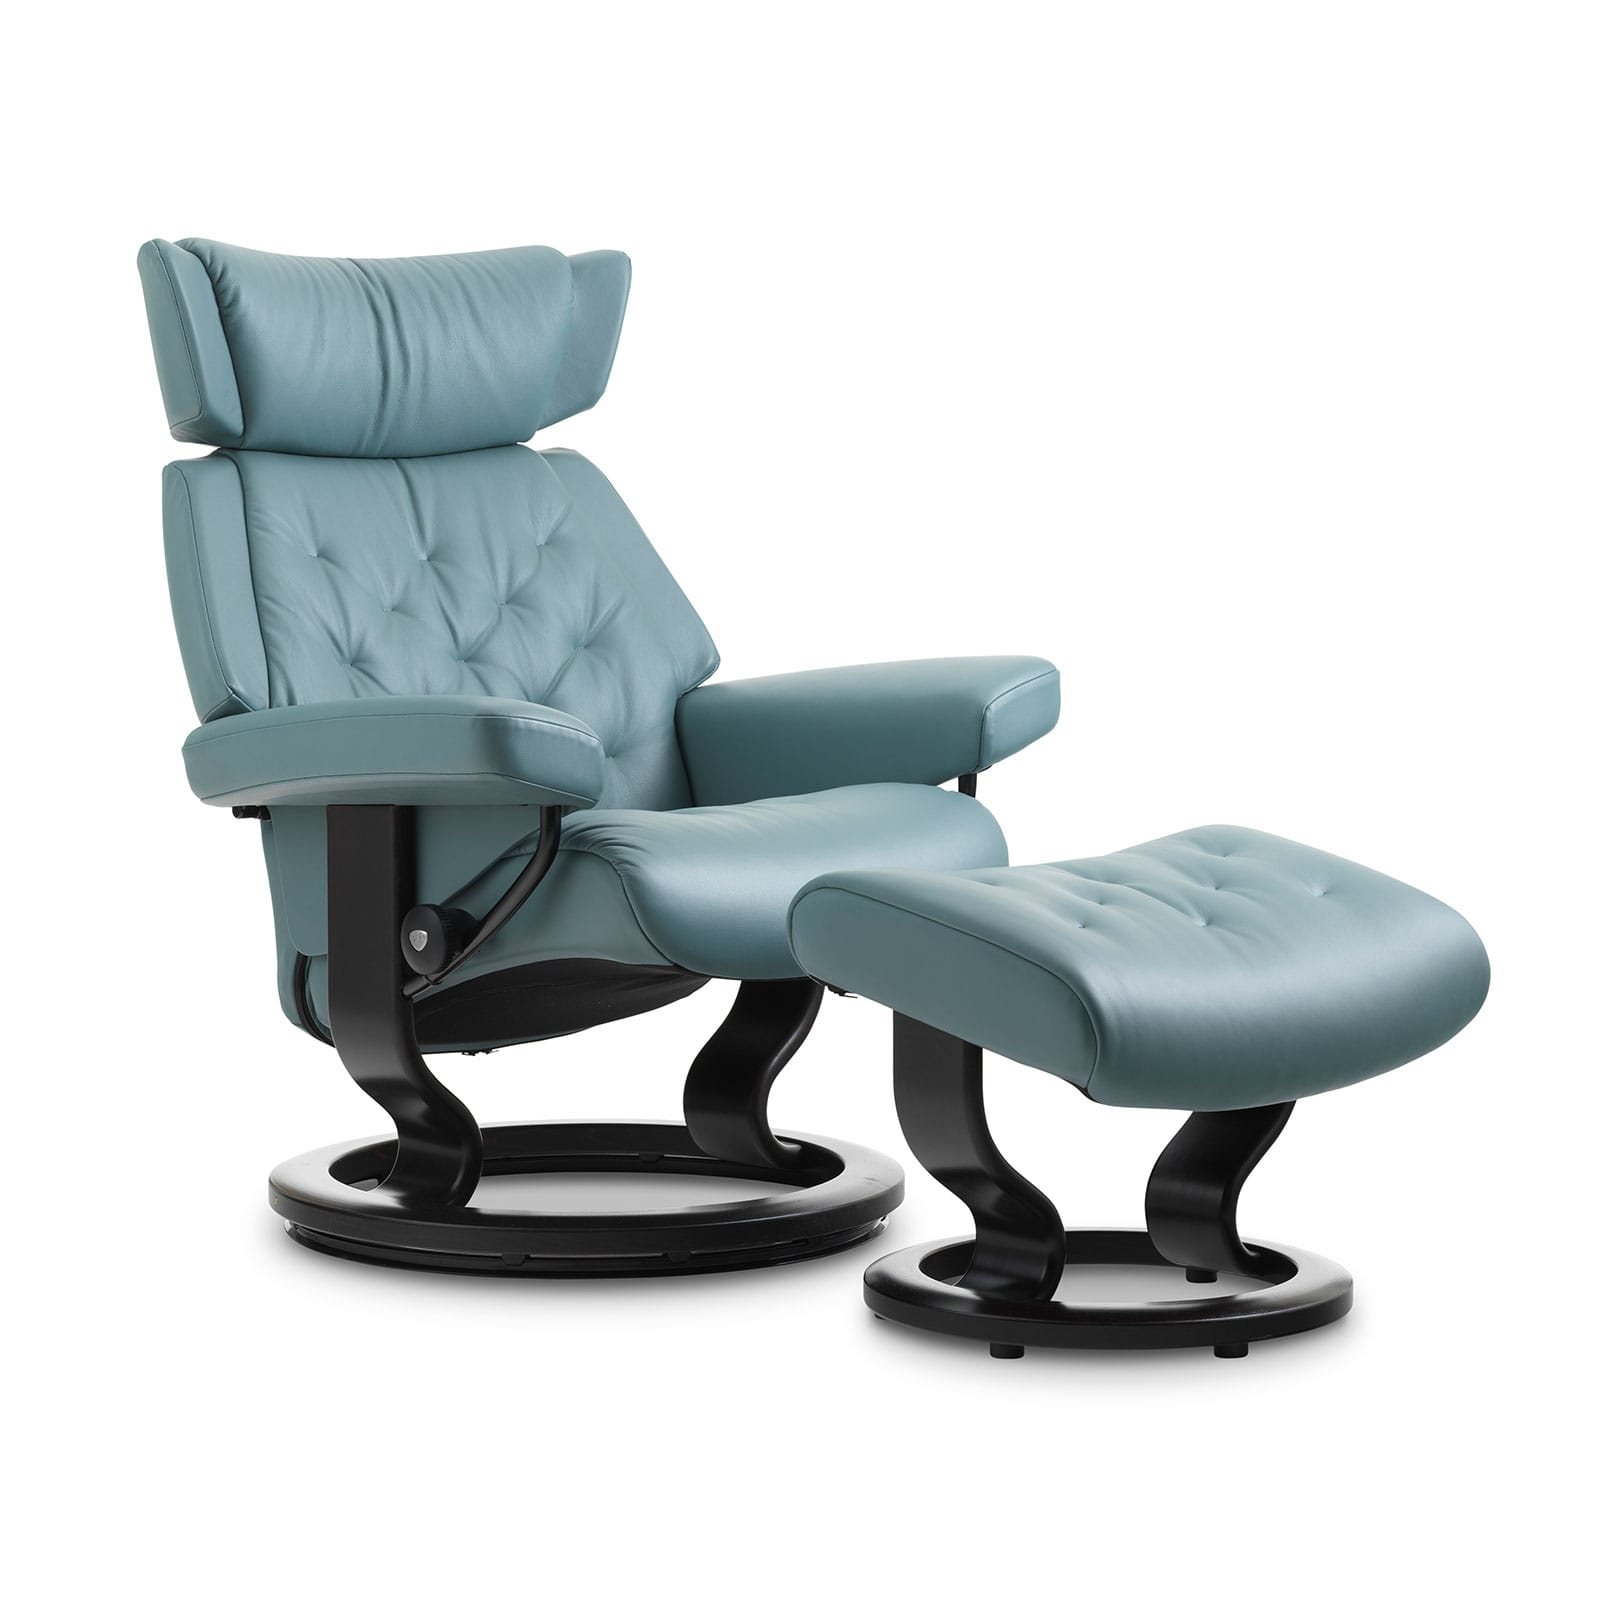 Stressless Sessel Skyline Paloma Aqua Green Classic Schwarz Hocker